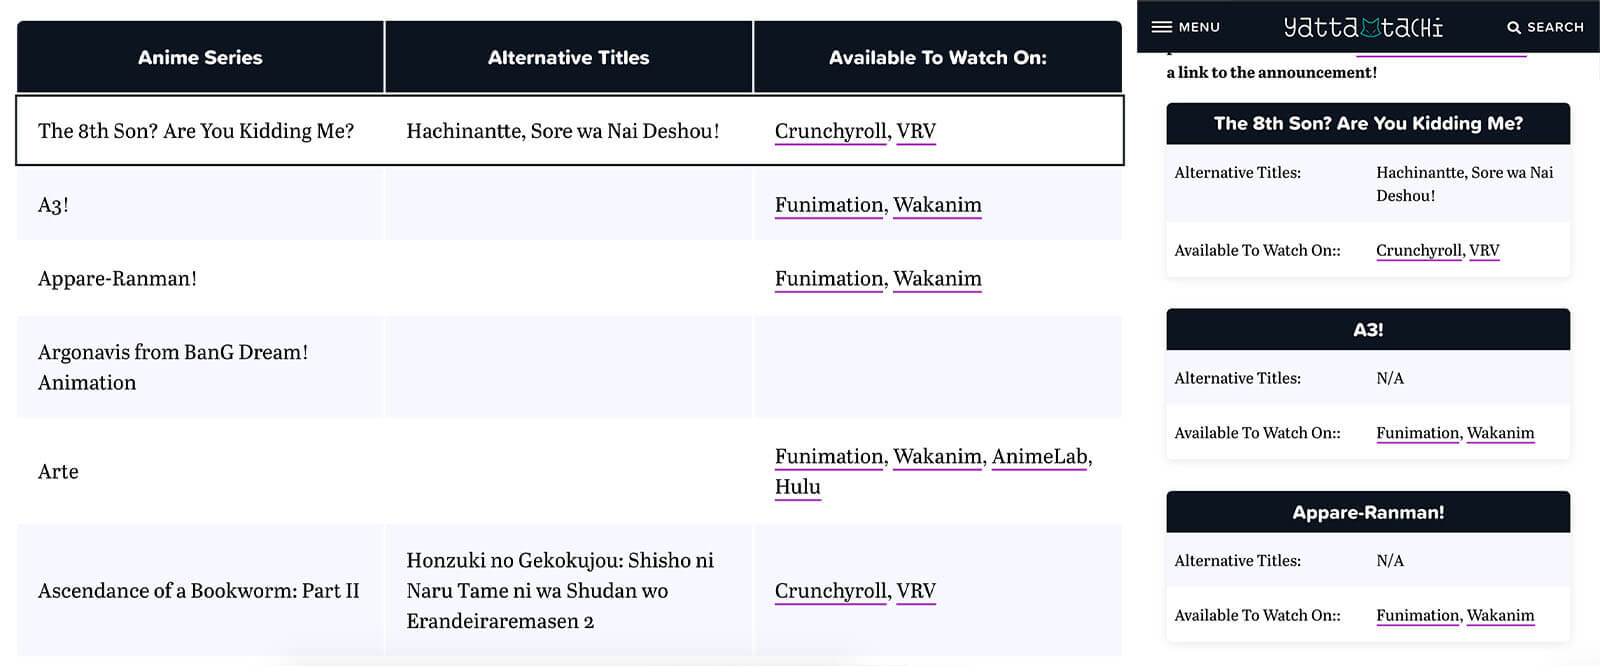 Showing how the tables in the Spring 2020 Anime & Where To Watch Them articles resizes in mobile